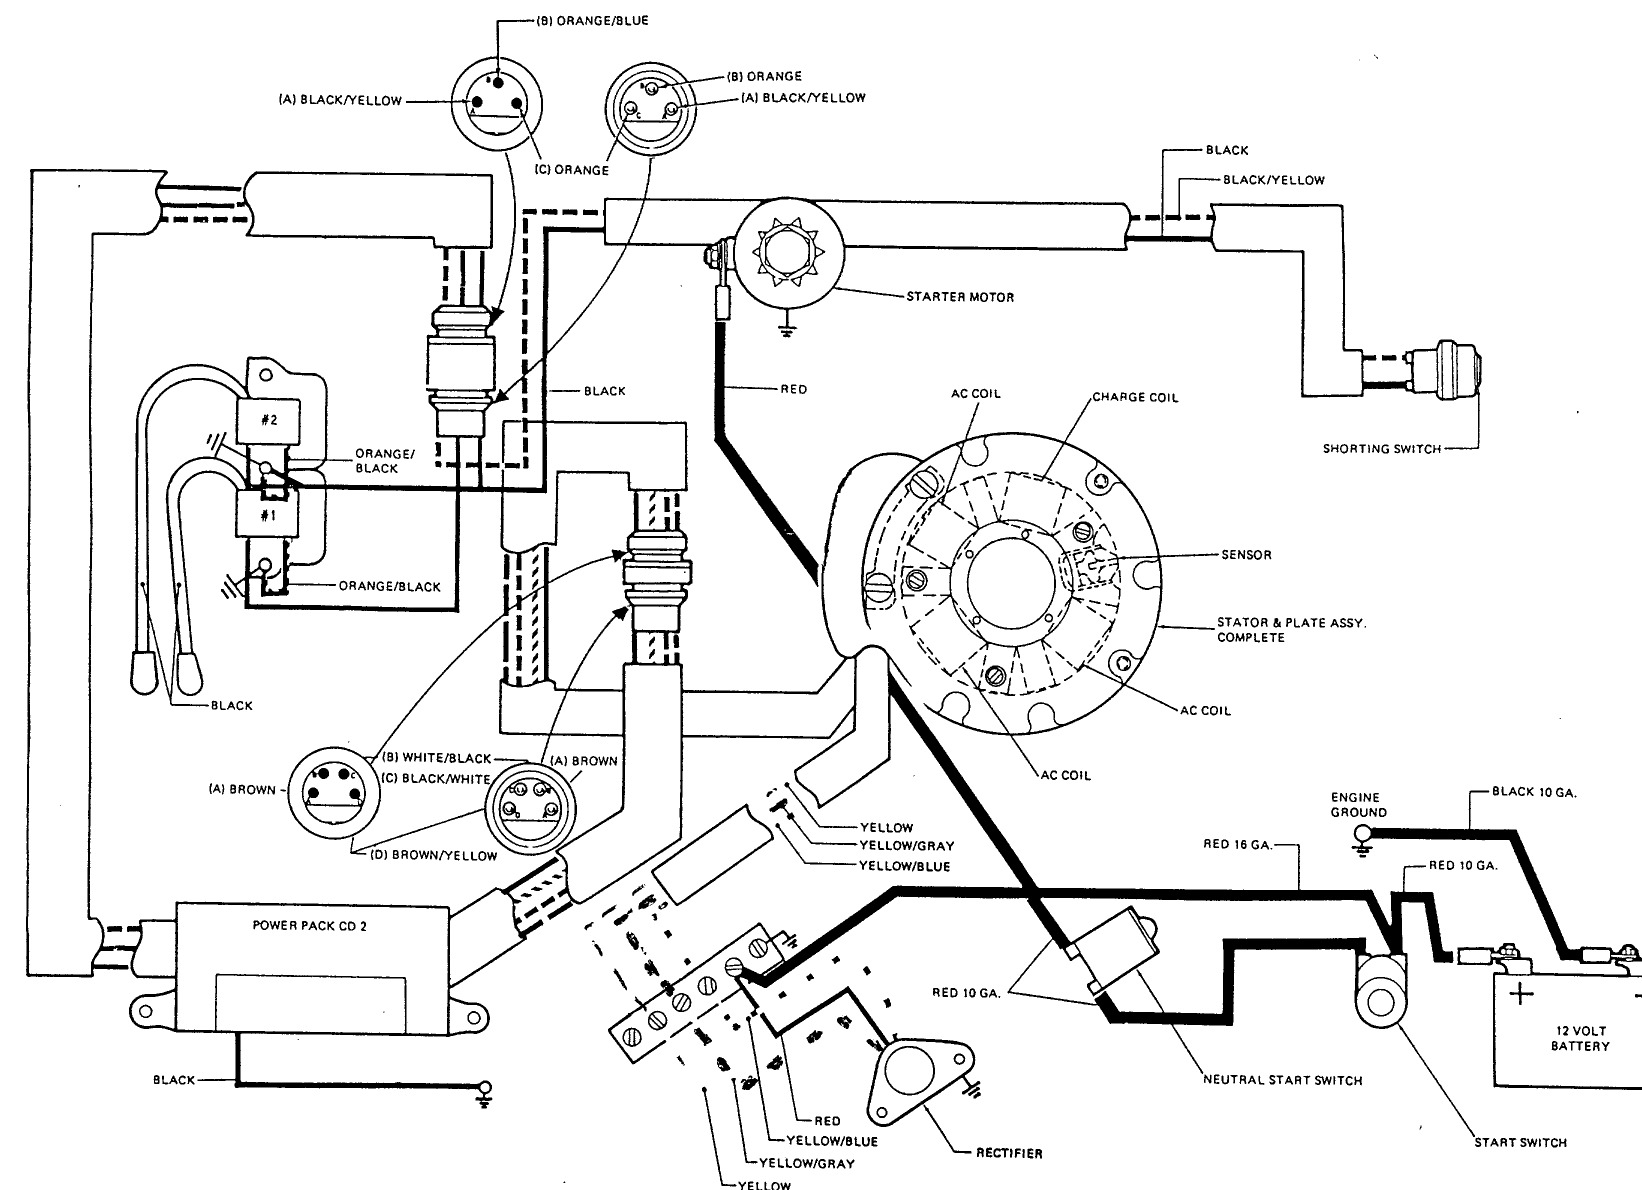 1979 johnson 35 hp outboard wiring diagram